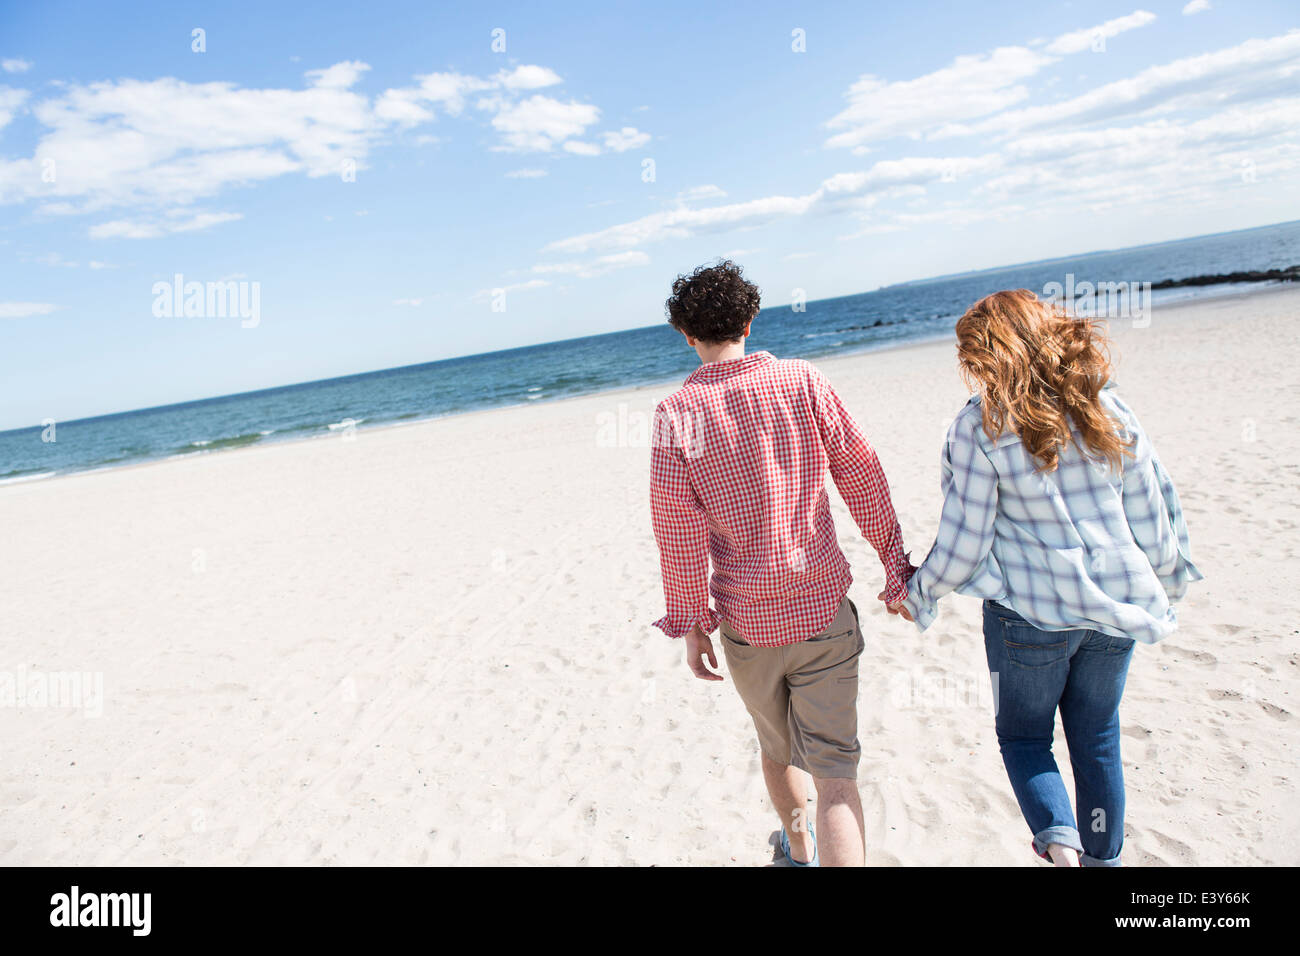 Romantic couple strolling hand in hand on beach - Stock Image